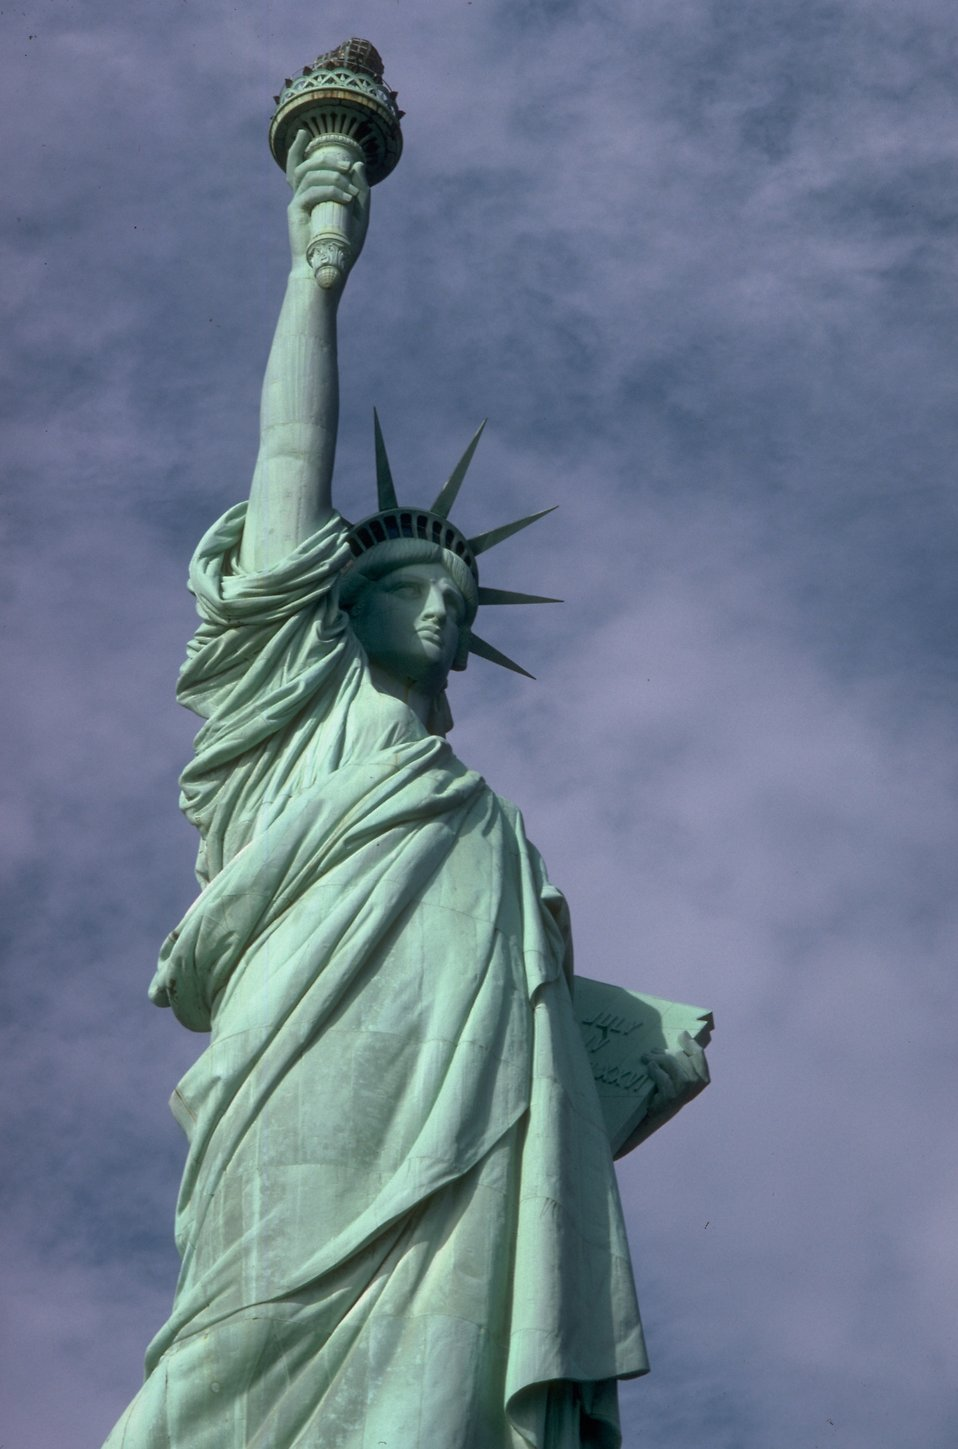 Free Stock Photo: The Statue of Liberty monument